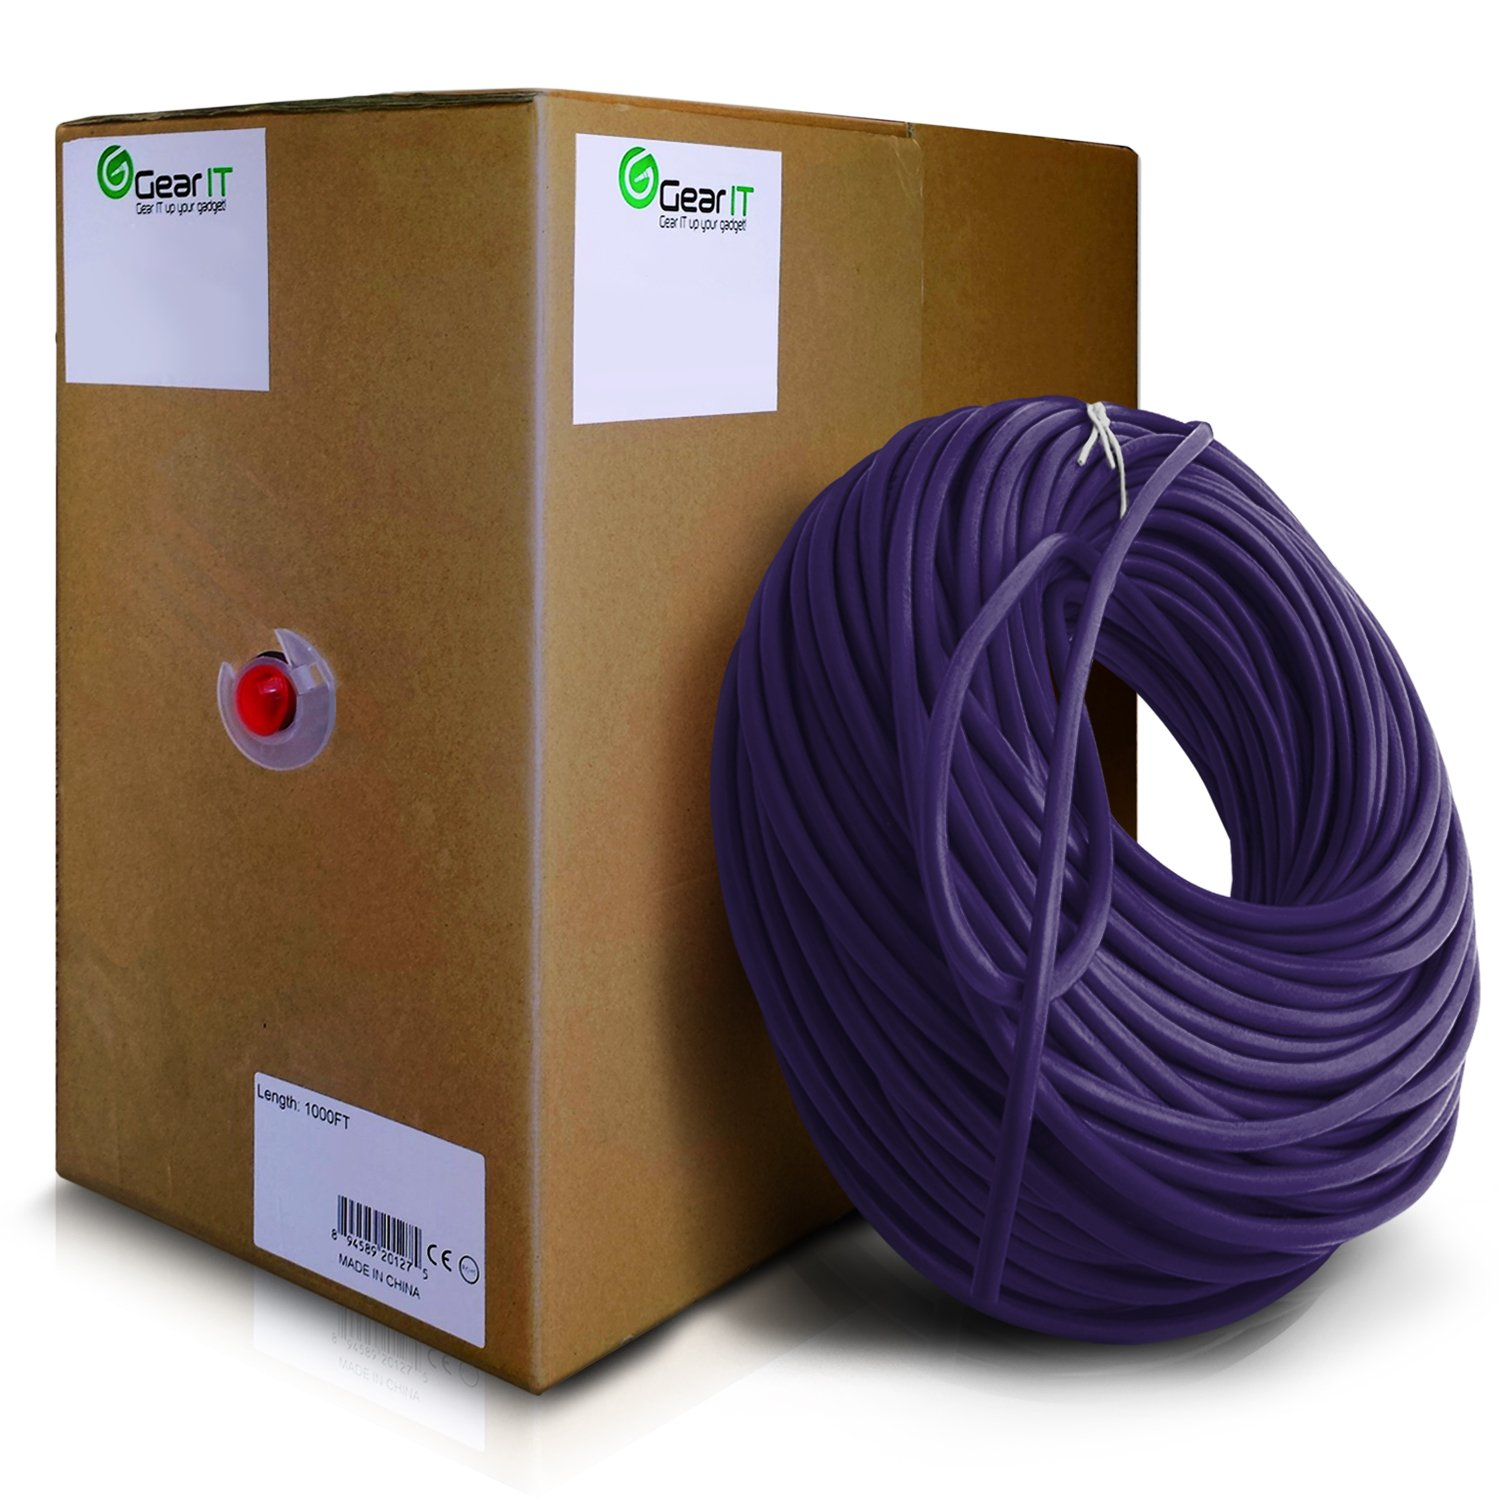 GearIT 1000 Feet Bulk Cat6 Ethernet Cable - Cat 6e 550Mhz 24AWG Full Copper Wire UTP Pull Box - In-Wall Rated (CM) Stranded Cat6, Purple by GearIT